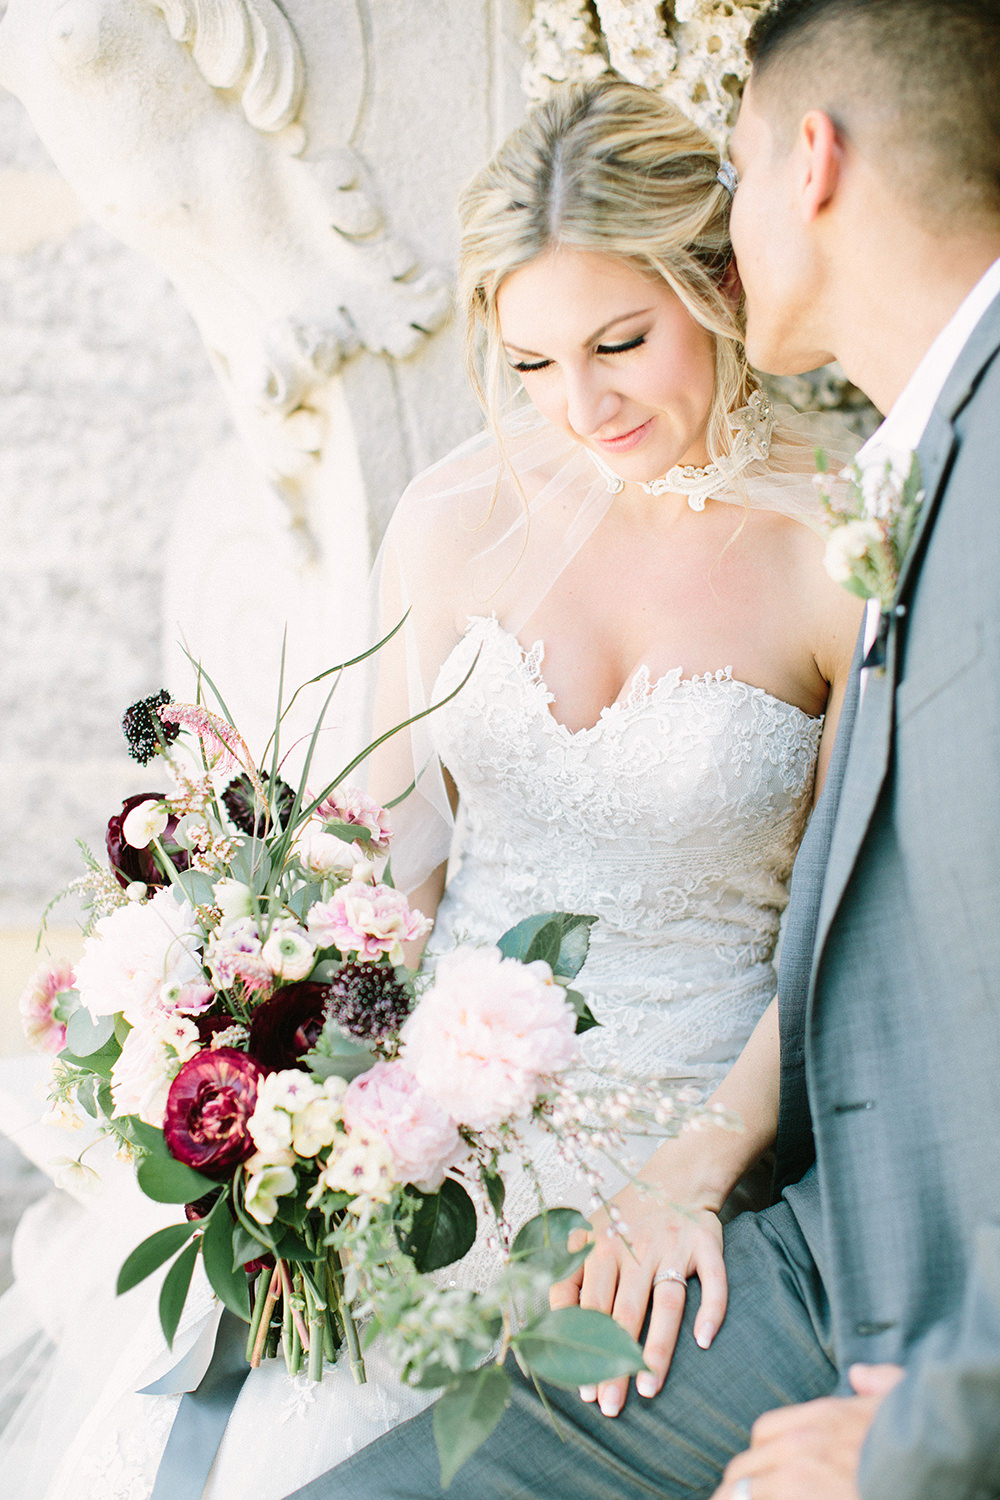 romantic wedding inspiration - photo by Erica J Photography http://ruffledblog.com/old-world-wedding-editorial-at-vizcaya-museum